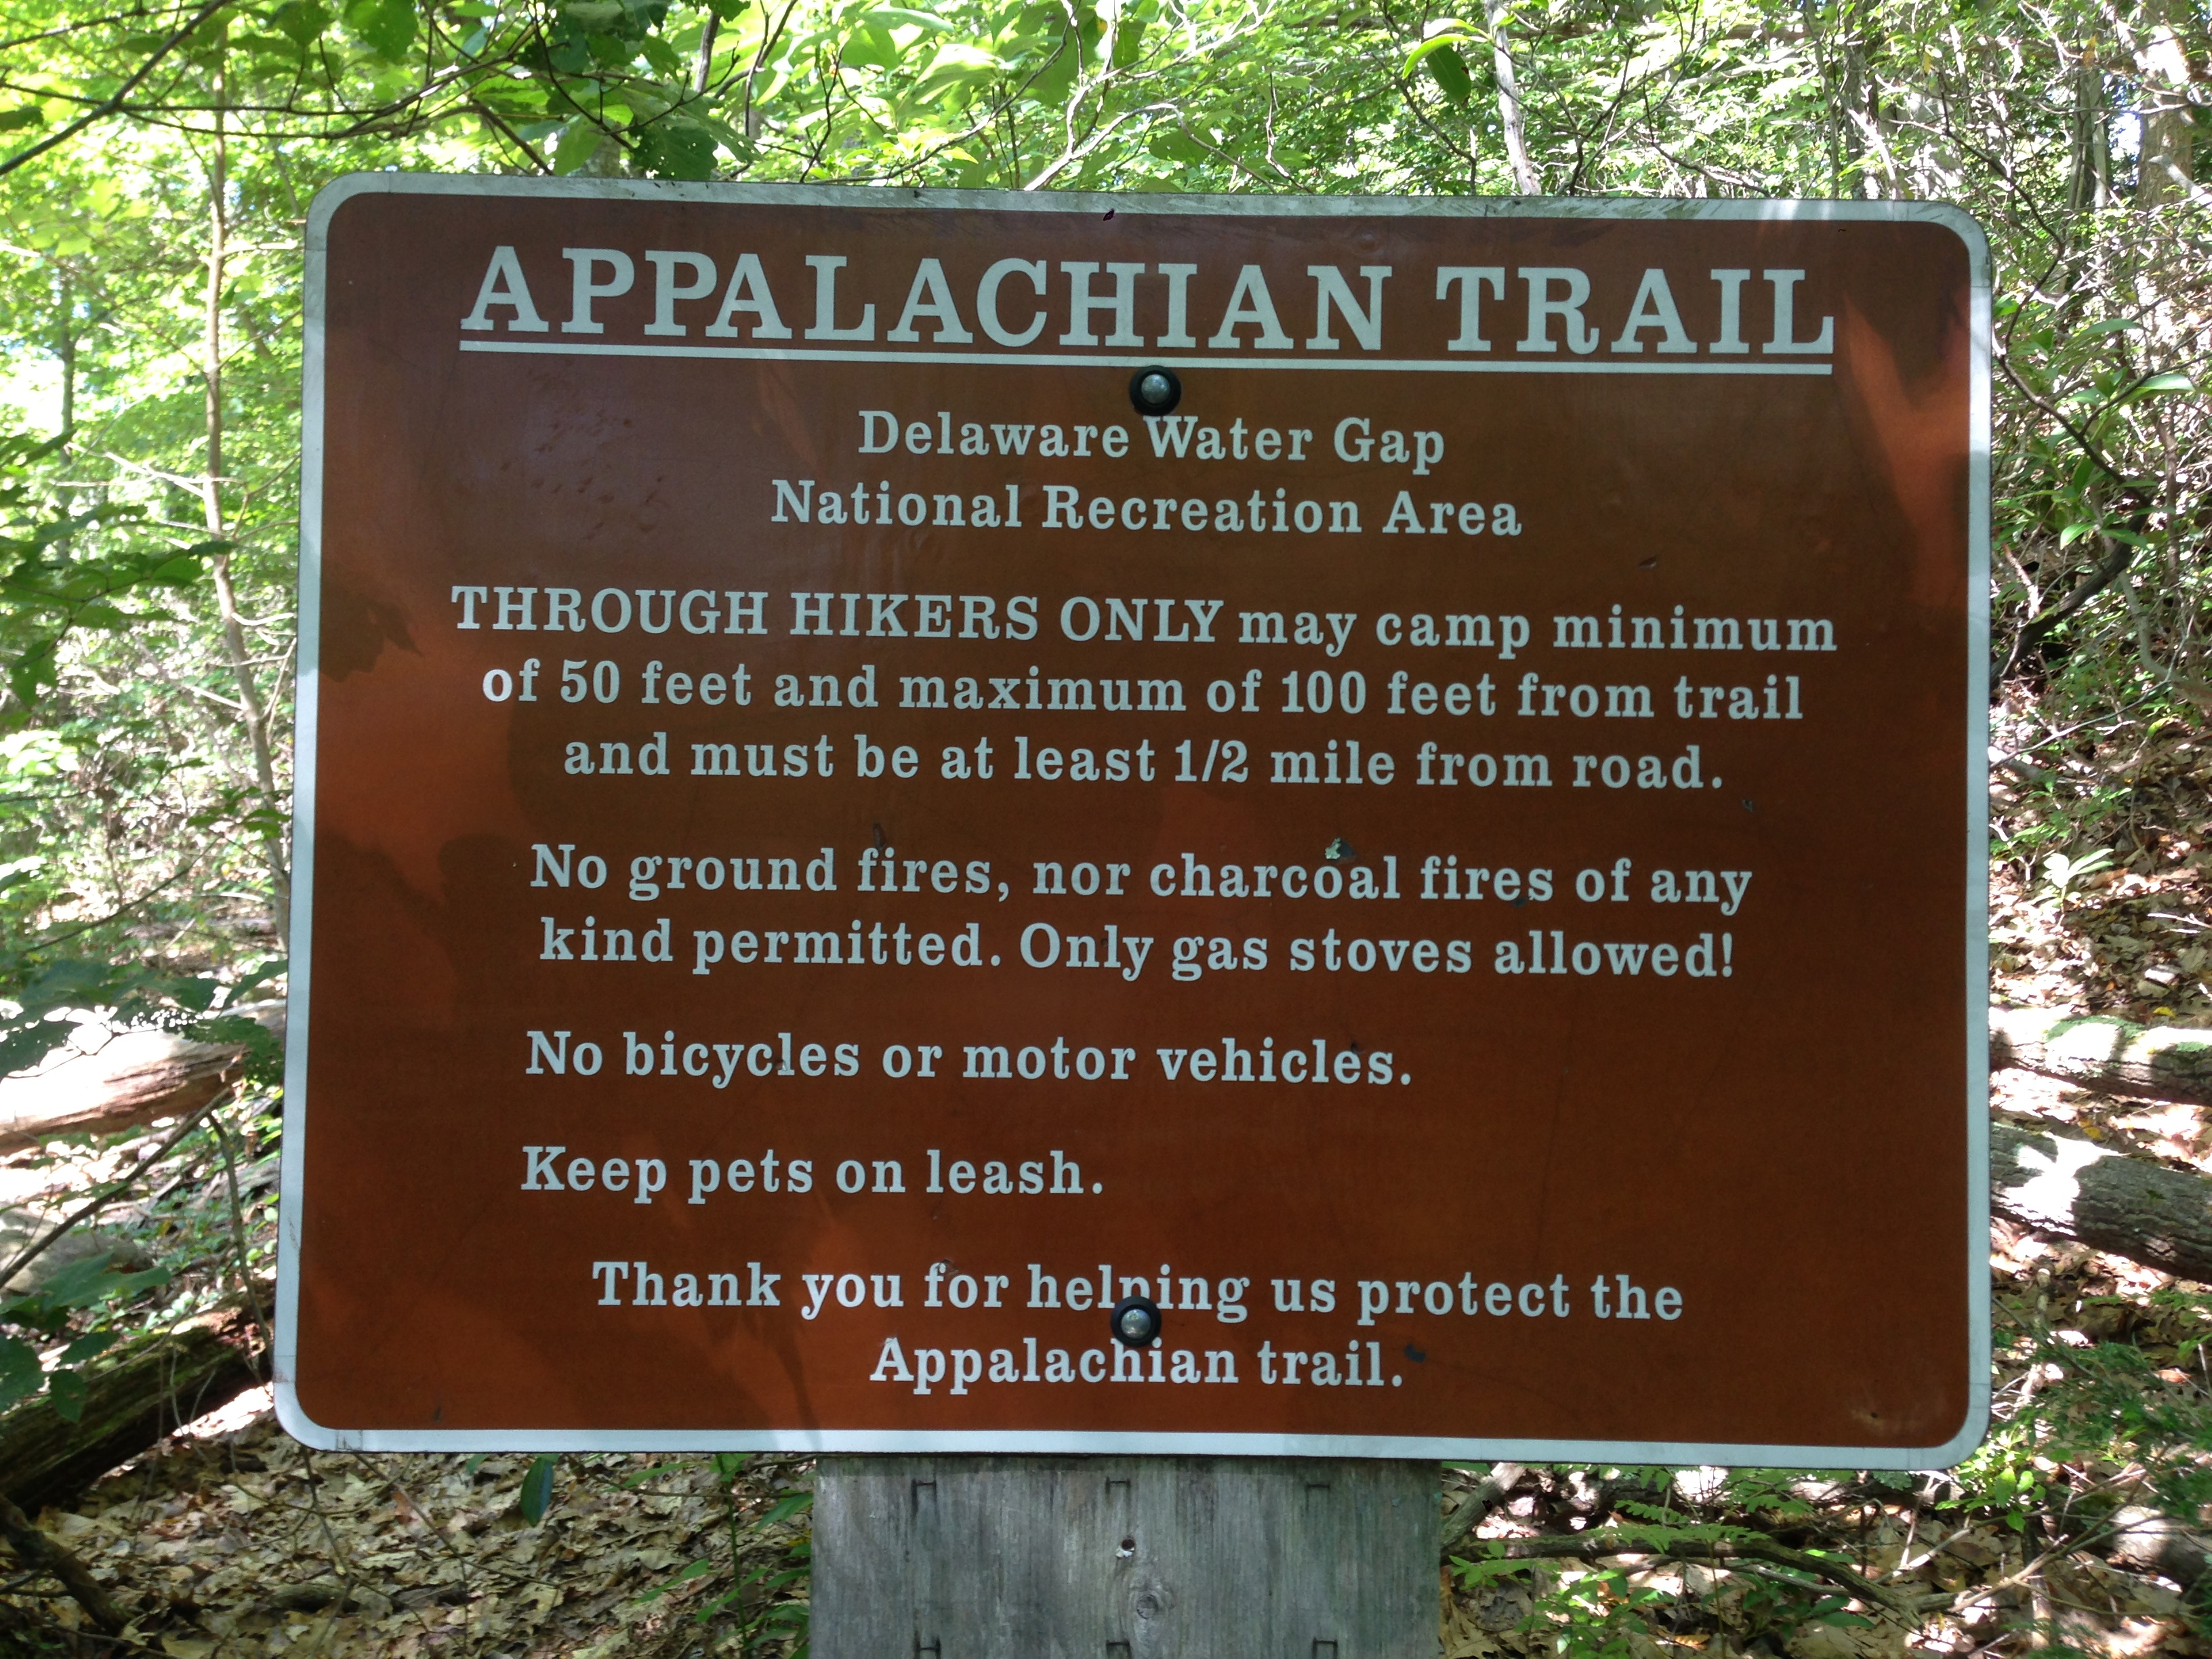 appalachian trail google map with File 2014 08 25 10 50 03 Sign For The Appalachian Trail Along Millbrook Road In The Delaware Water Gap National Recreation Area  New Jersey on 3 additionally Eqip also Windows Update Error 403 Forbidden Access Is Denied furthermore Harpers Ferry Wv as well Big 3 Long Distance Hiking Trails.